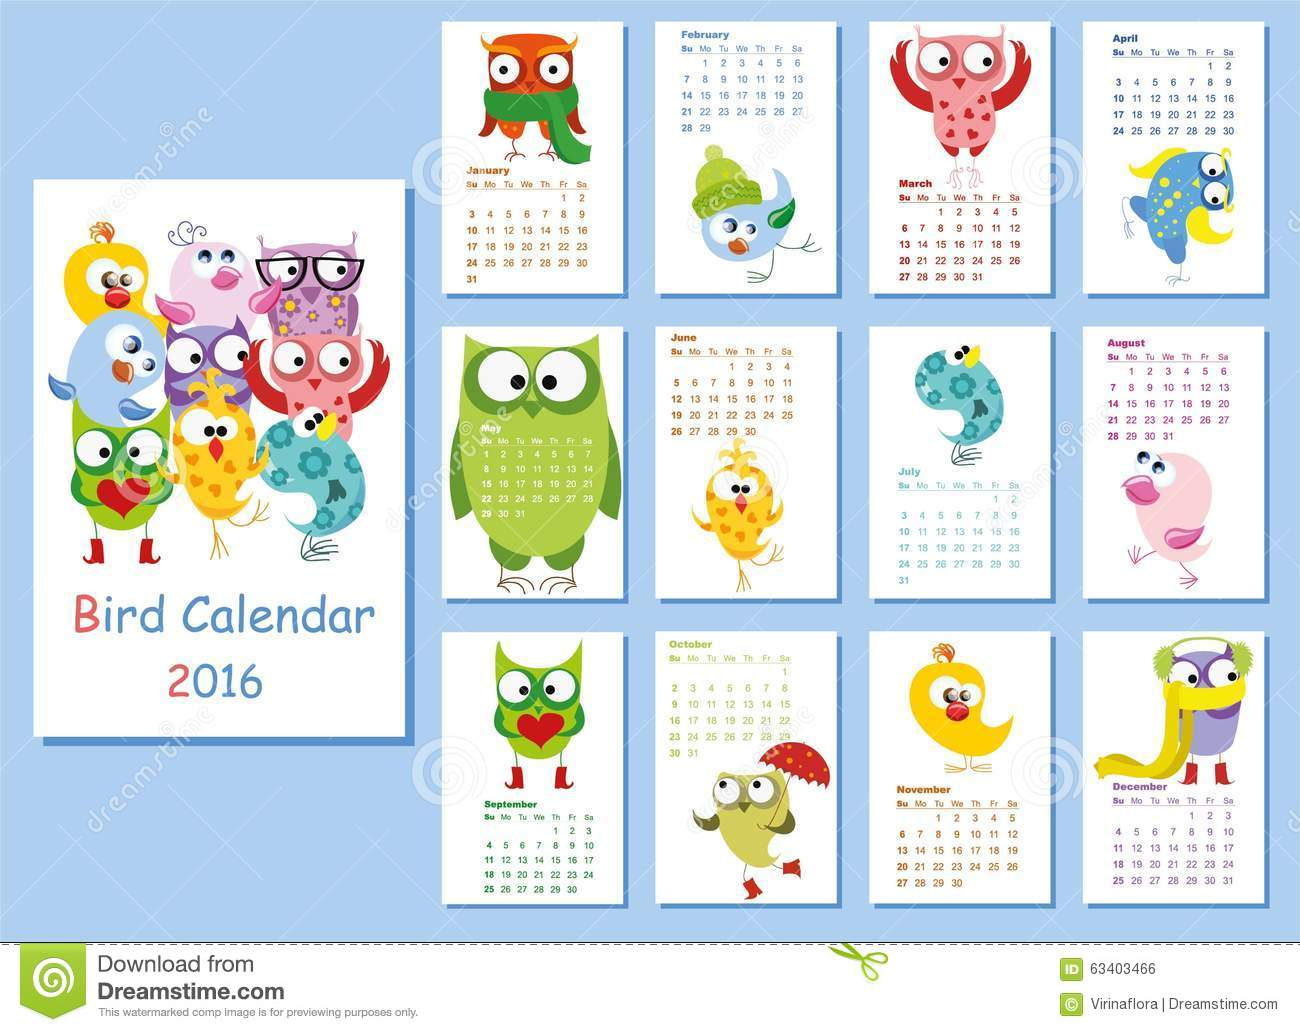 Cute Calendar Illustration : Calendar cute owls and birds vector stock